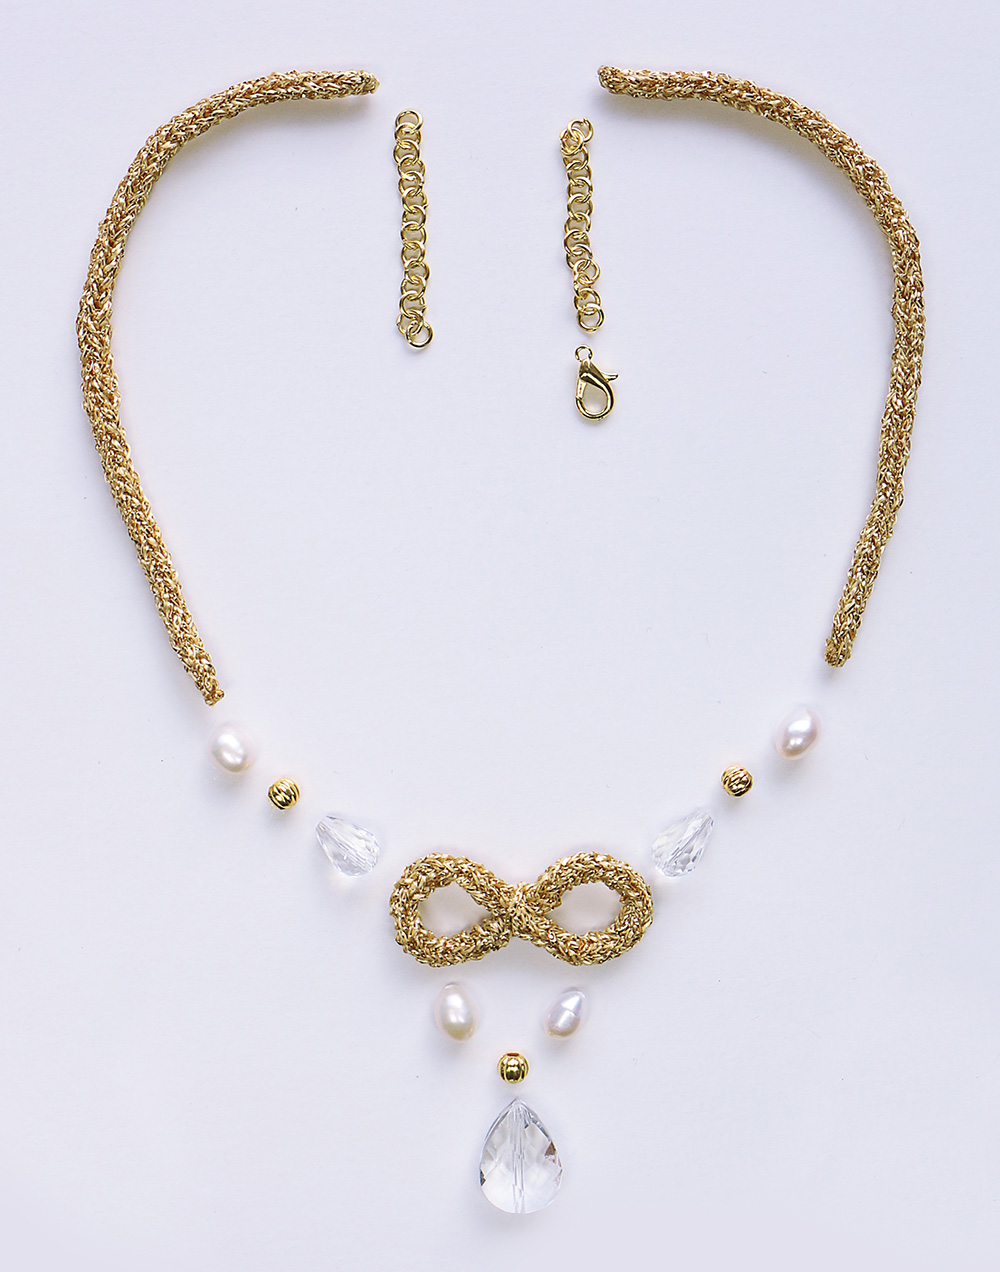 Infinite Tricotin Necklace components